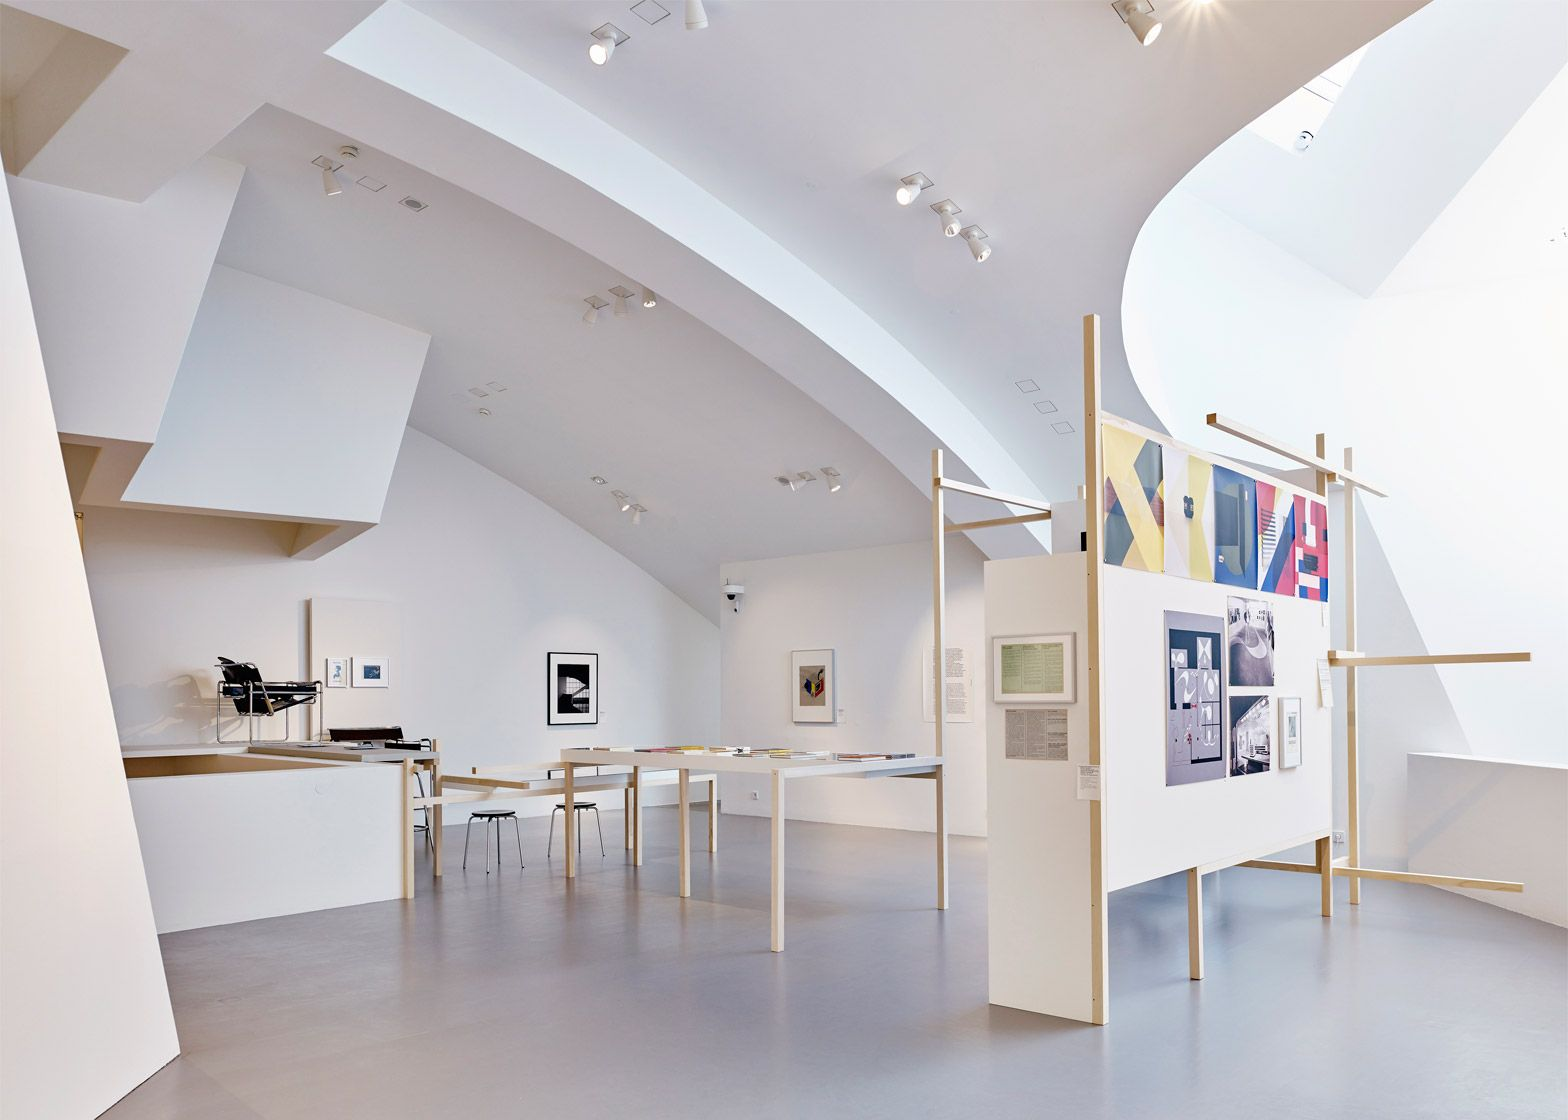 Vitra Design Museum Gallery Installation Shot Of The Bauhaus Retrospective At The Vitra Design